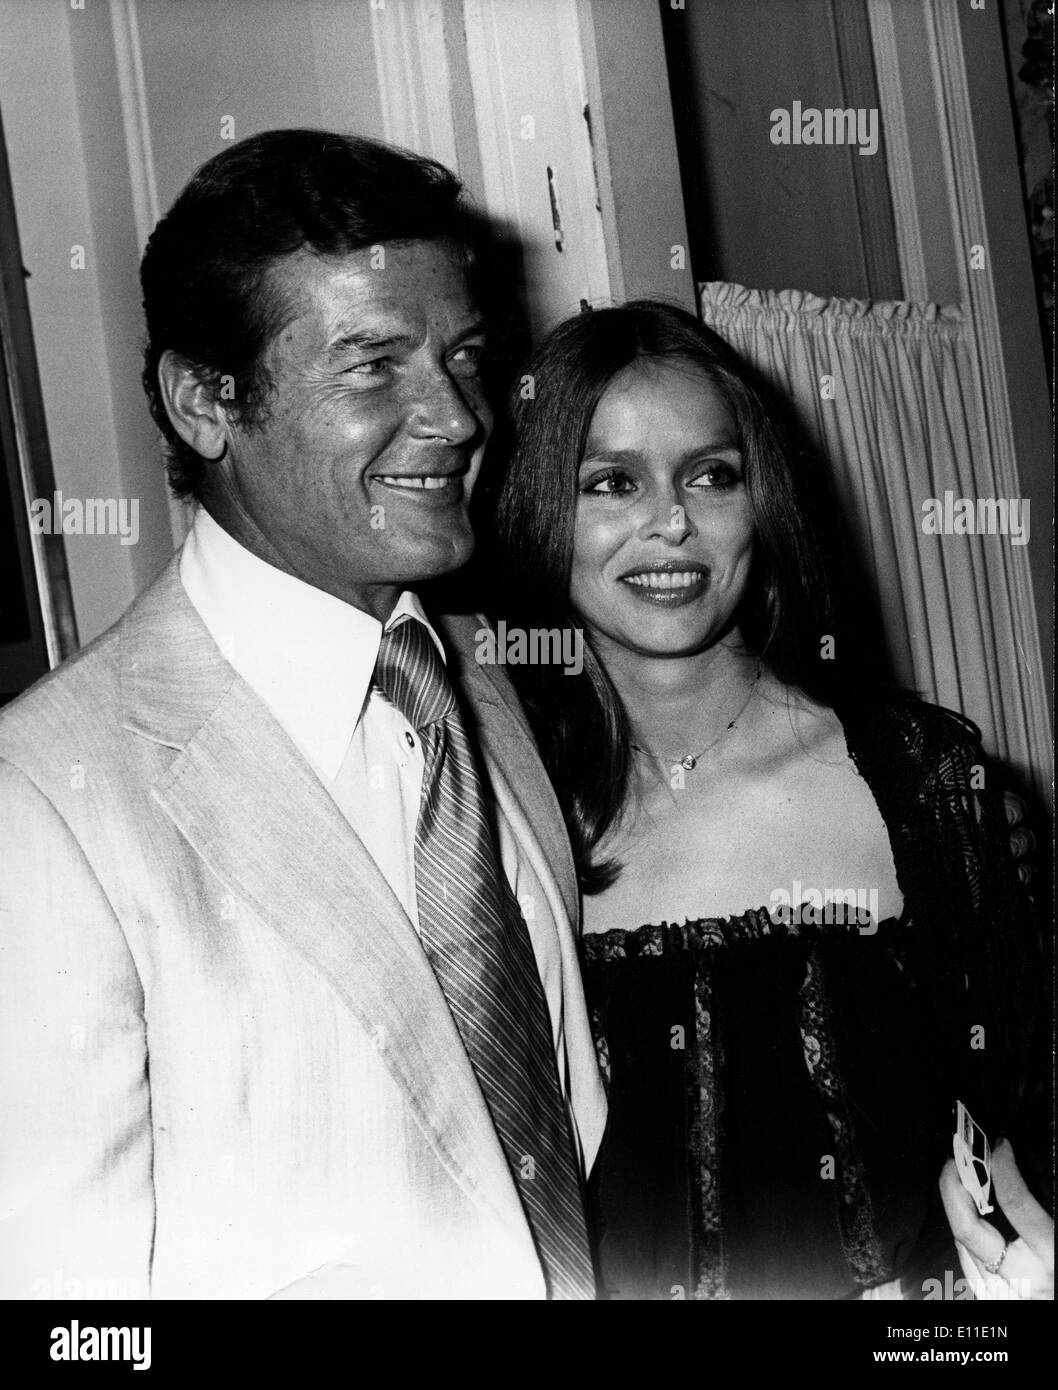 May 23, 1977; Paris, France; Actor ROGER MOORE aka James Bond 007 and BARBARA BACH co-stars in 'The Spy Who Loved Me' at the Film Festival in Cannes. (Credit Image: KEYSTONE Pictures USA/ZUMAPRESS.com) - Stock Image